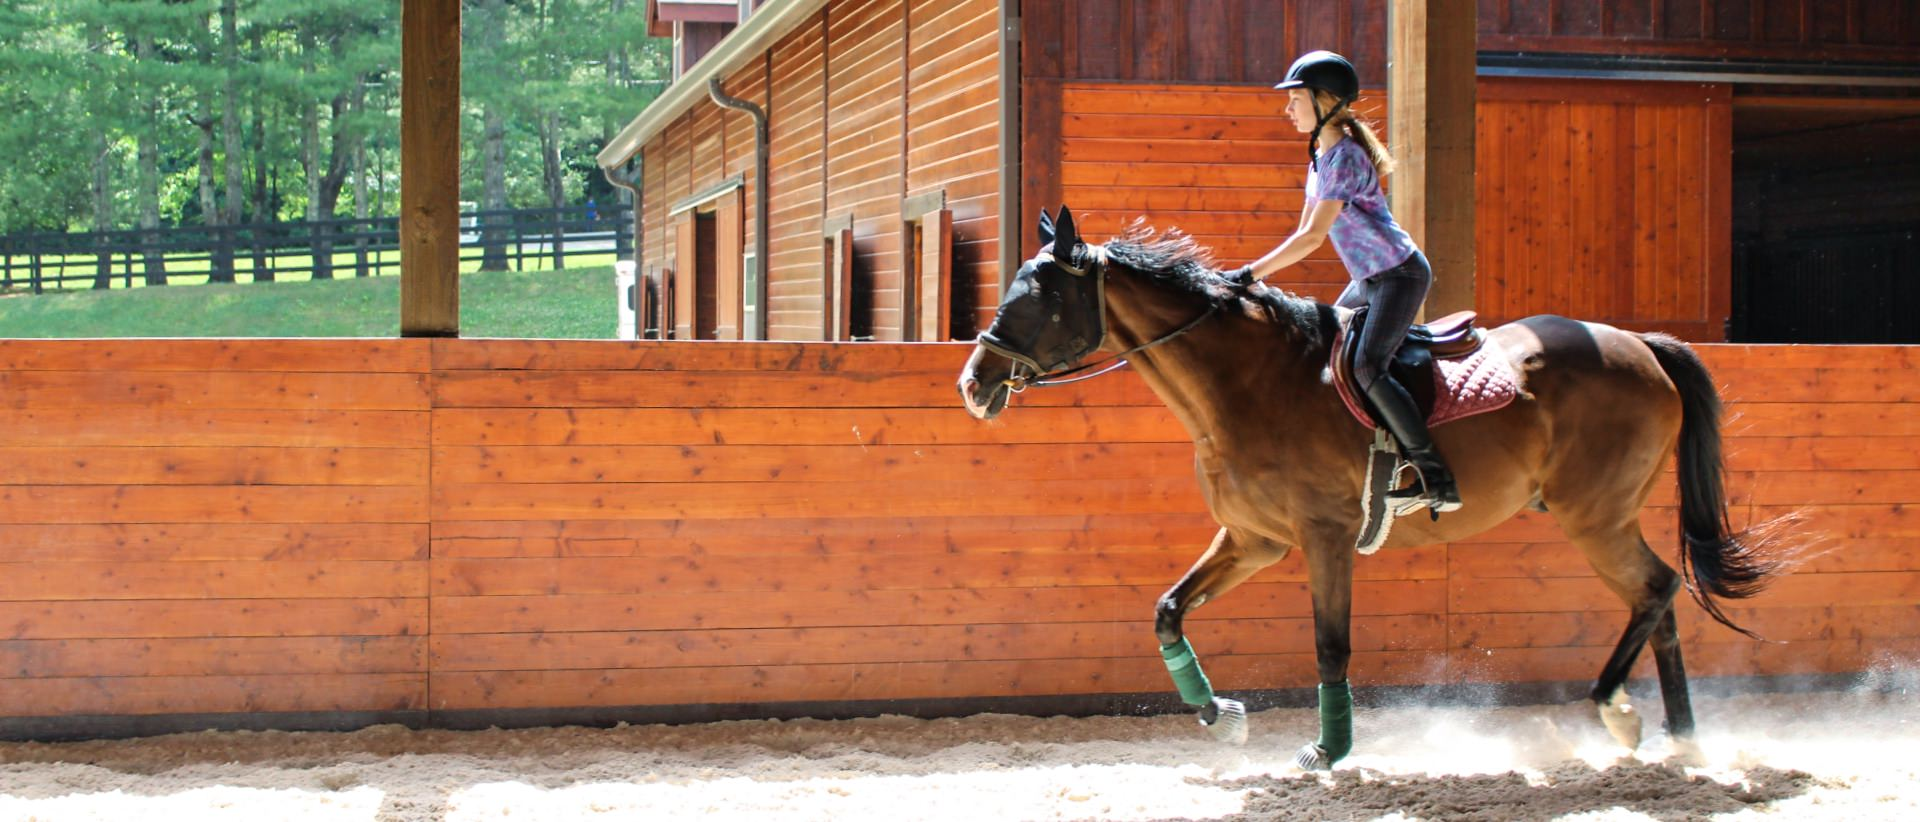 girl horse camp riding in arena